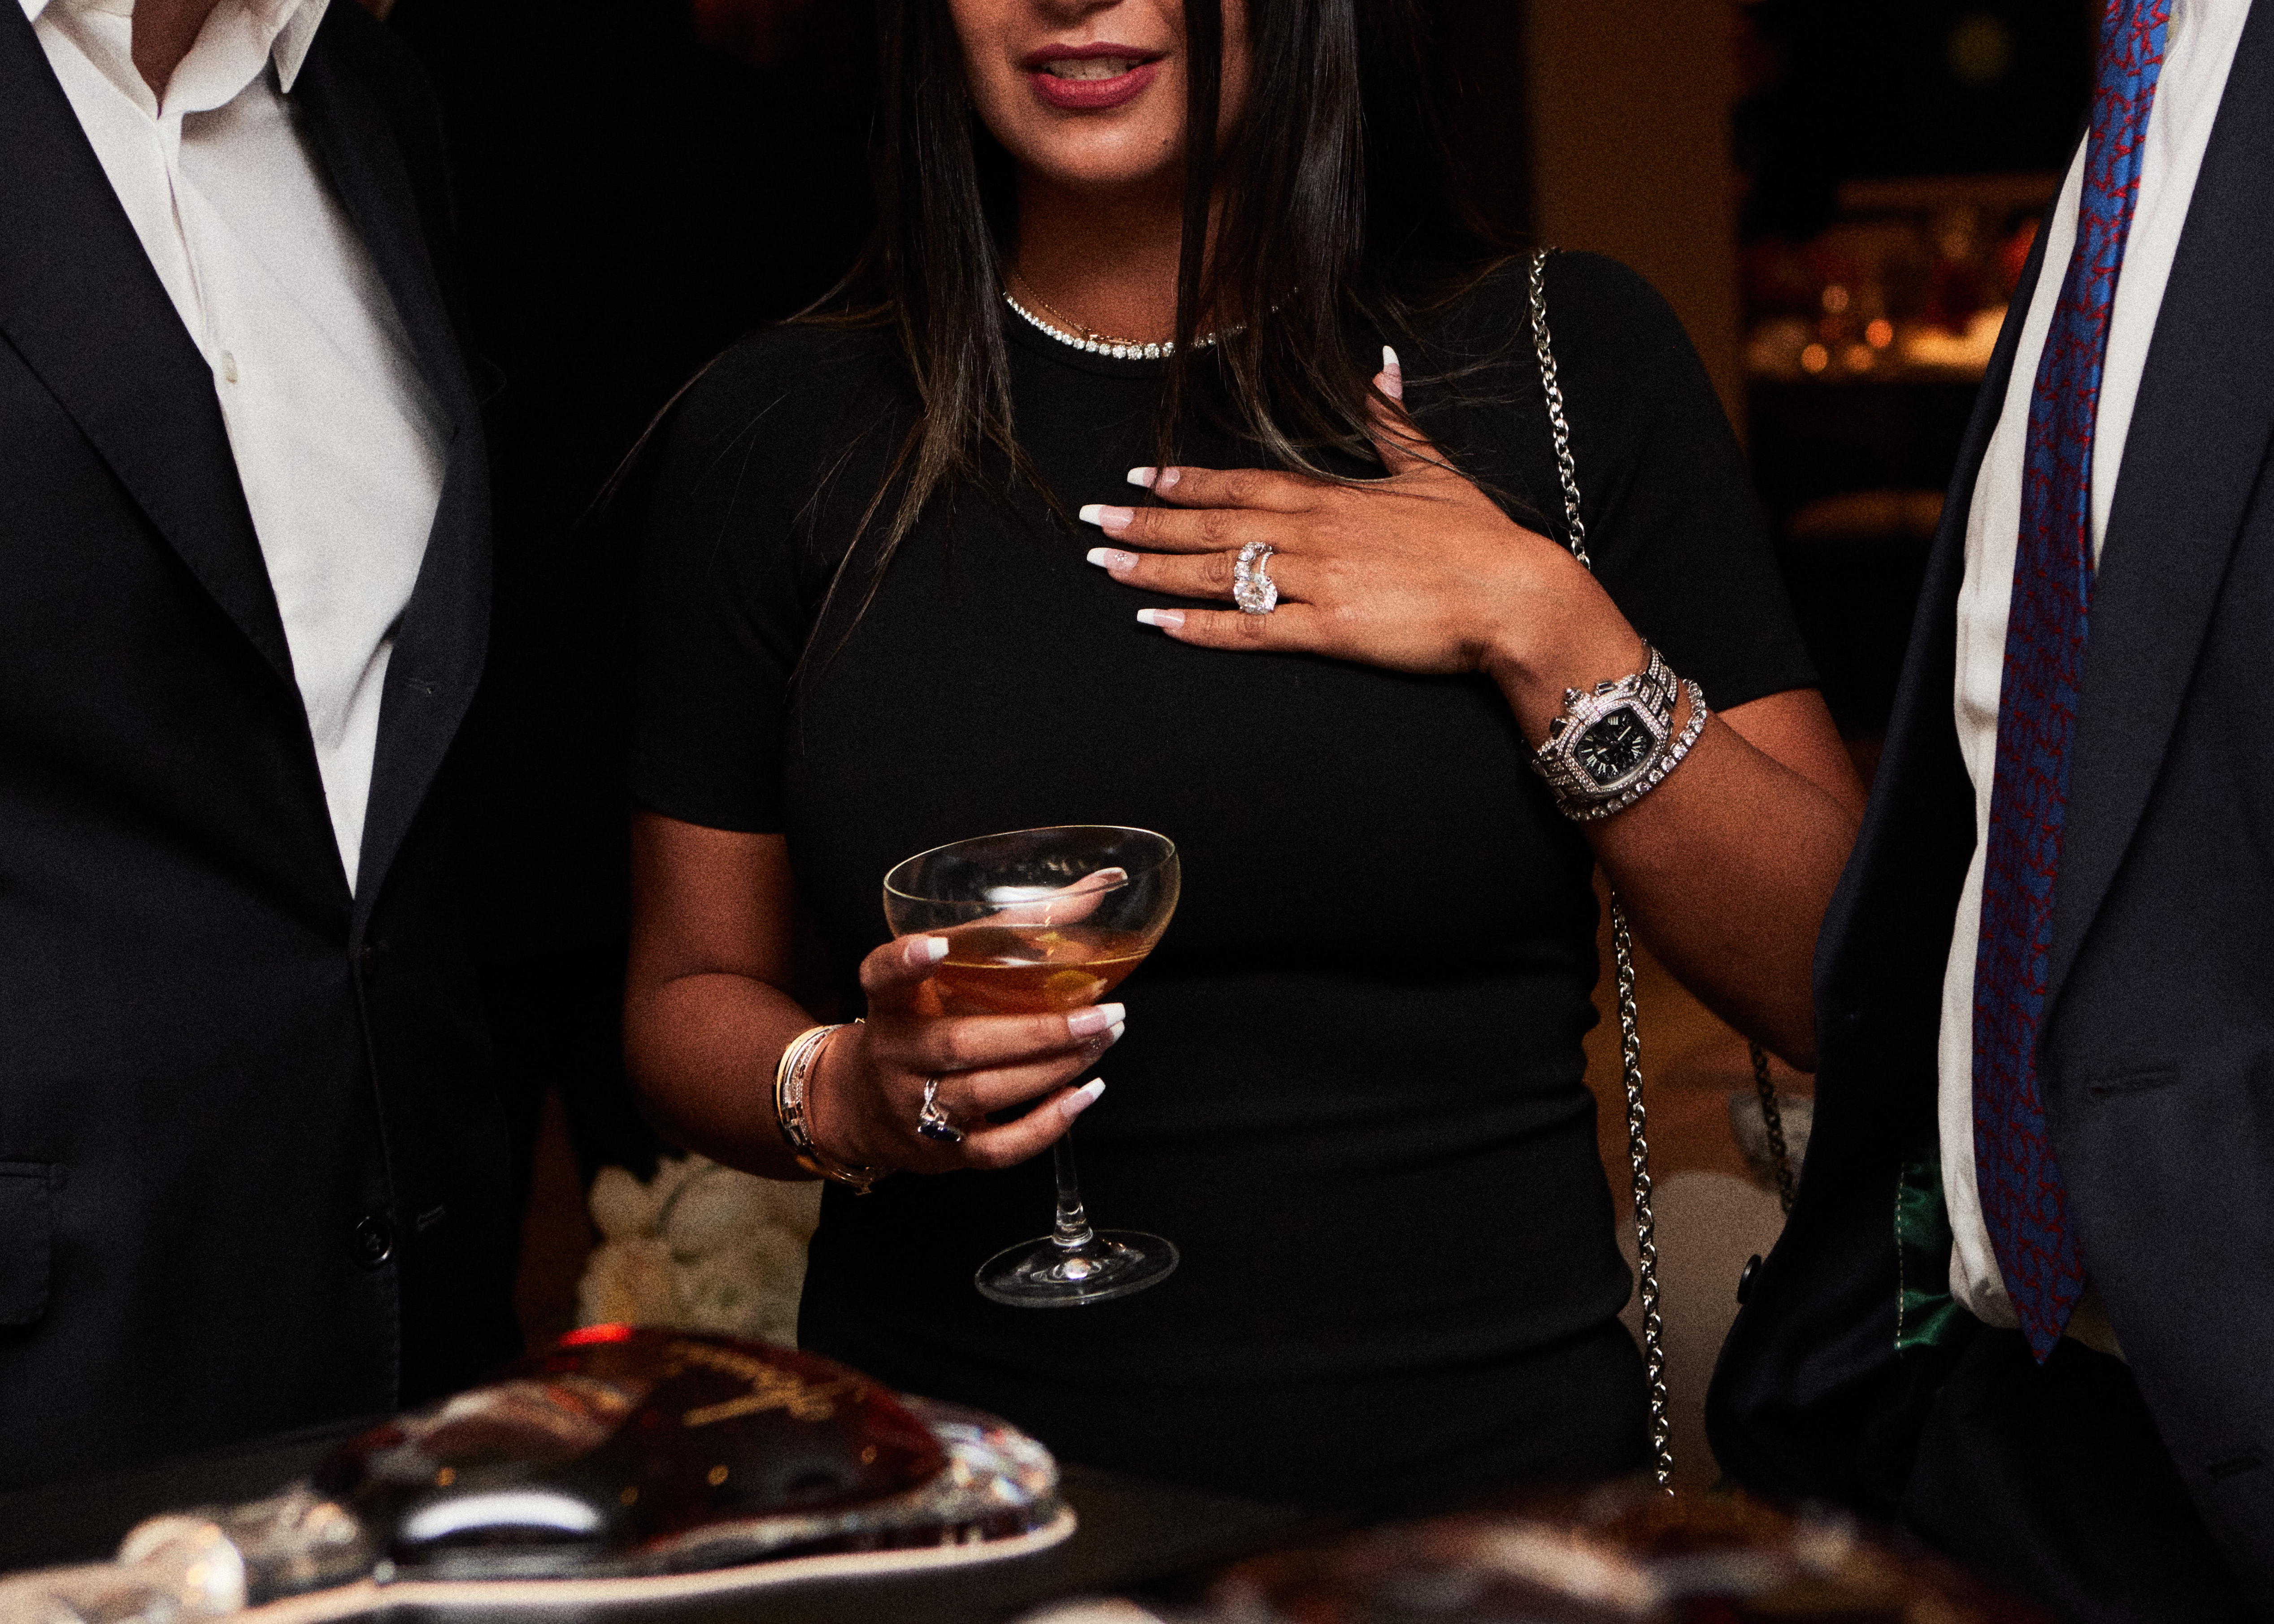 Quintessentially - Lifestyle Management - VIP Party